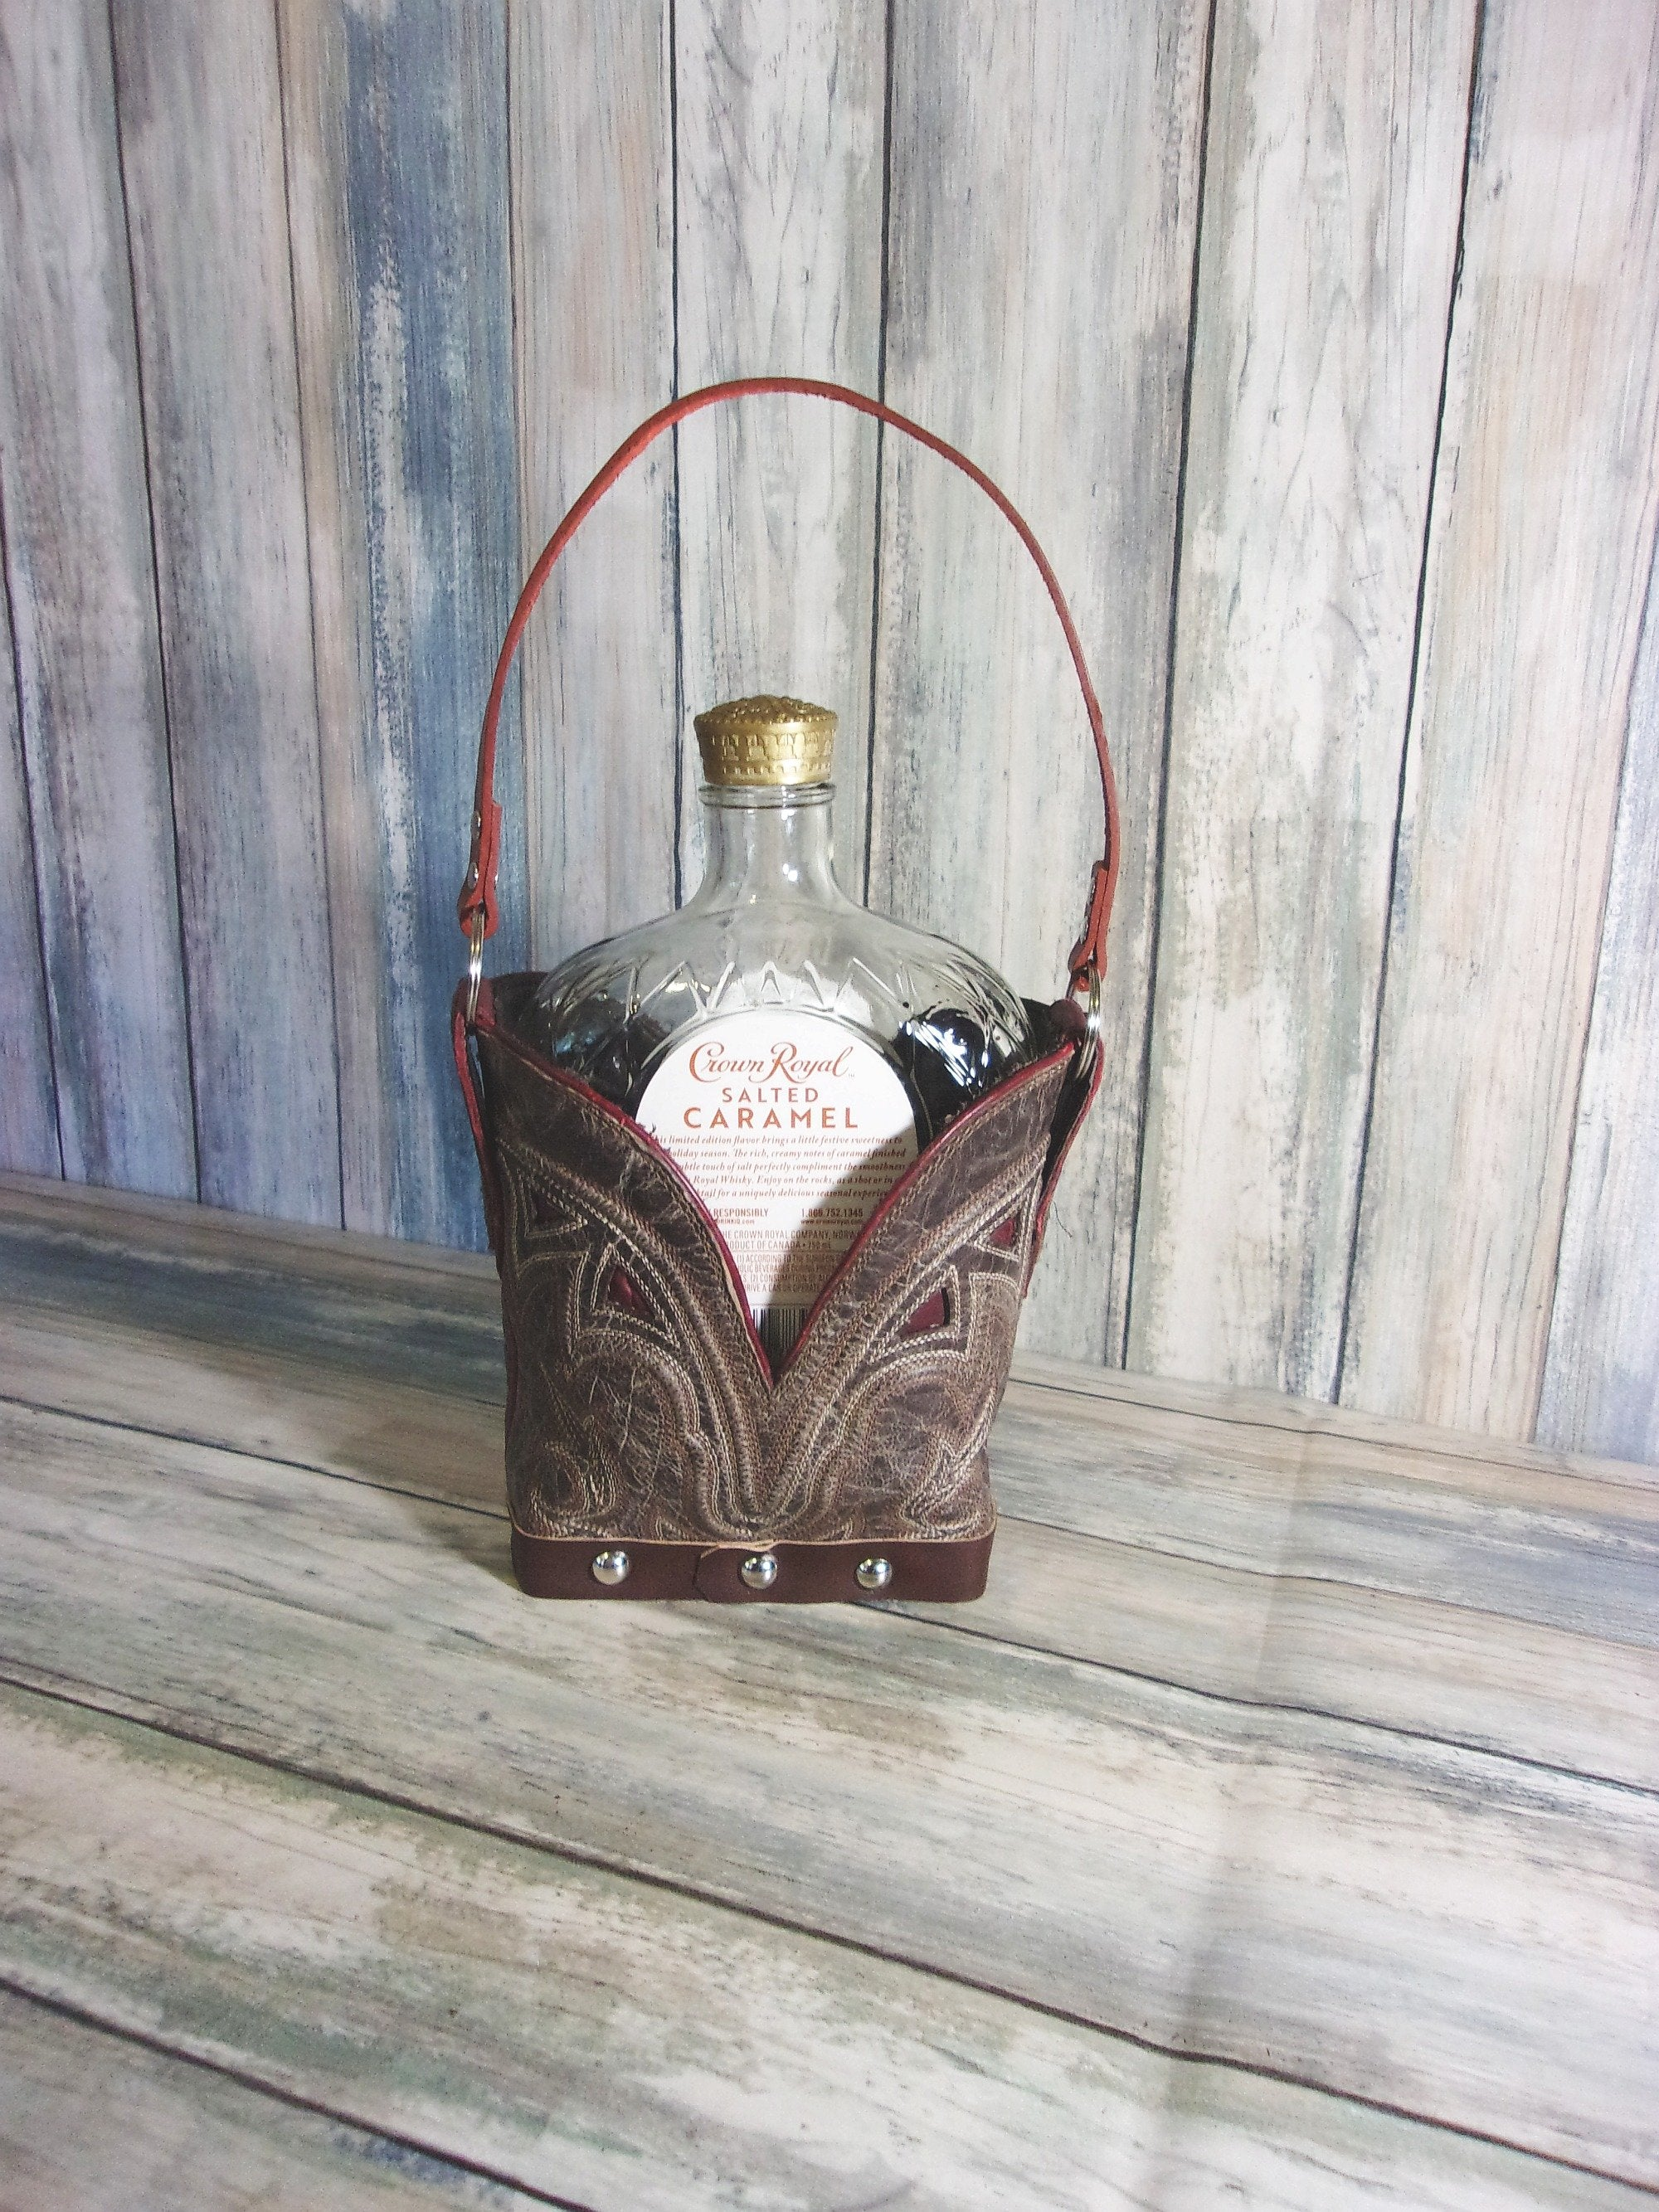 Whiskey Tote Bag - Leather Whiskey Tote - Whiskey Lover Gift - Whiskey Caddy CR81.2 cowboy boot purses, western fringe purse, handmade leather purses, boot purse, handmade western purse, custom leather handbags Chris Thompson Bags